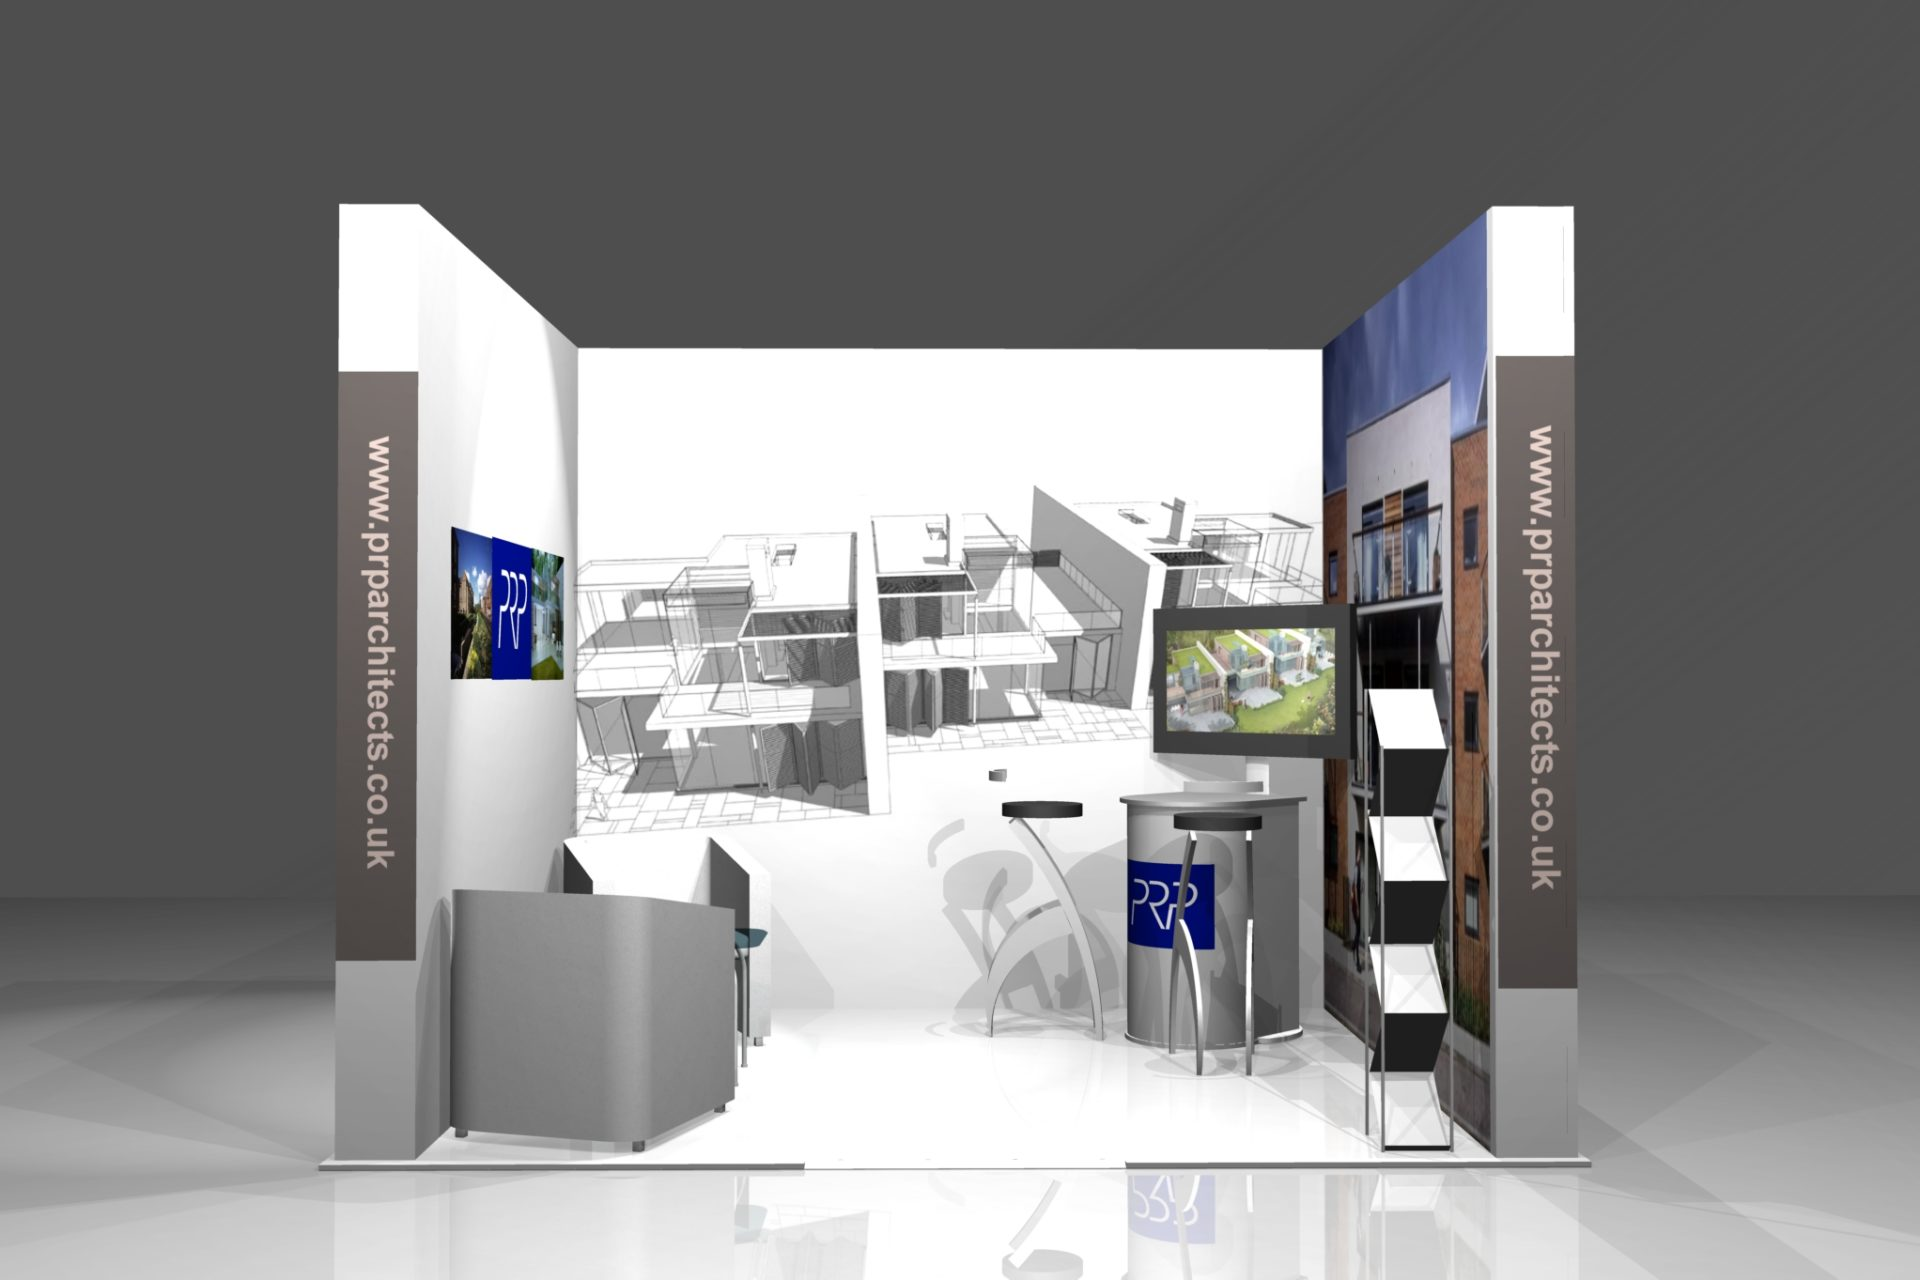 Small Exhibition Stand Years : 7m x 4m exhibition stand design cool stands t exhibition